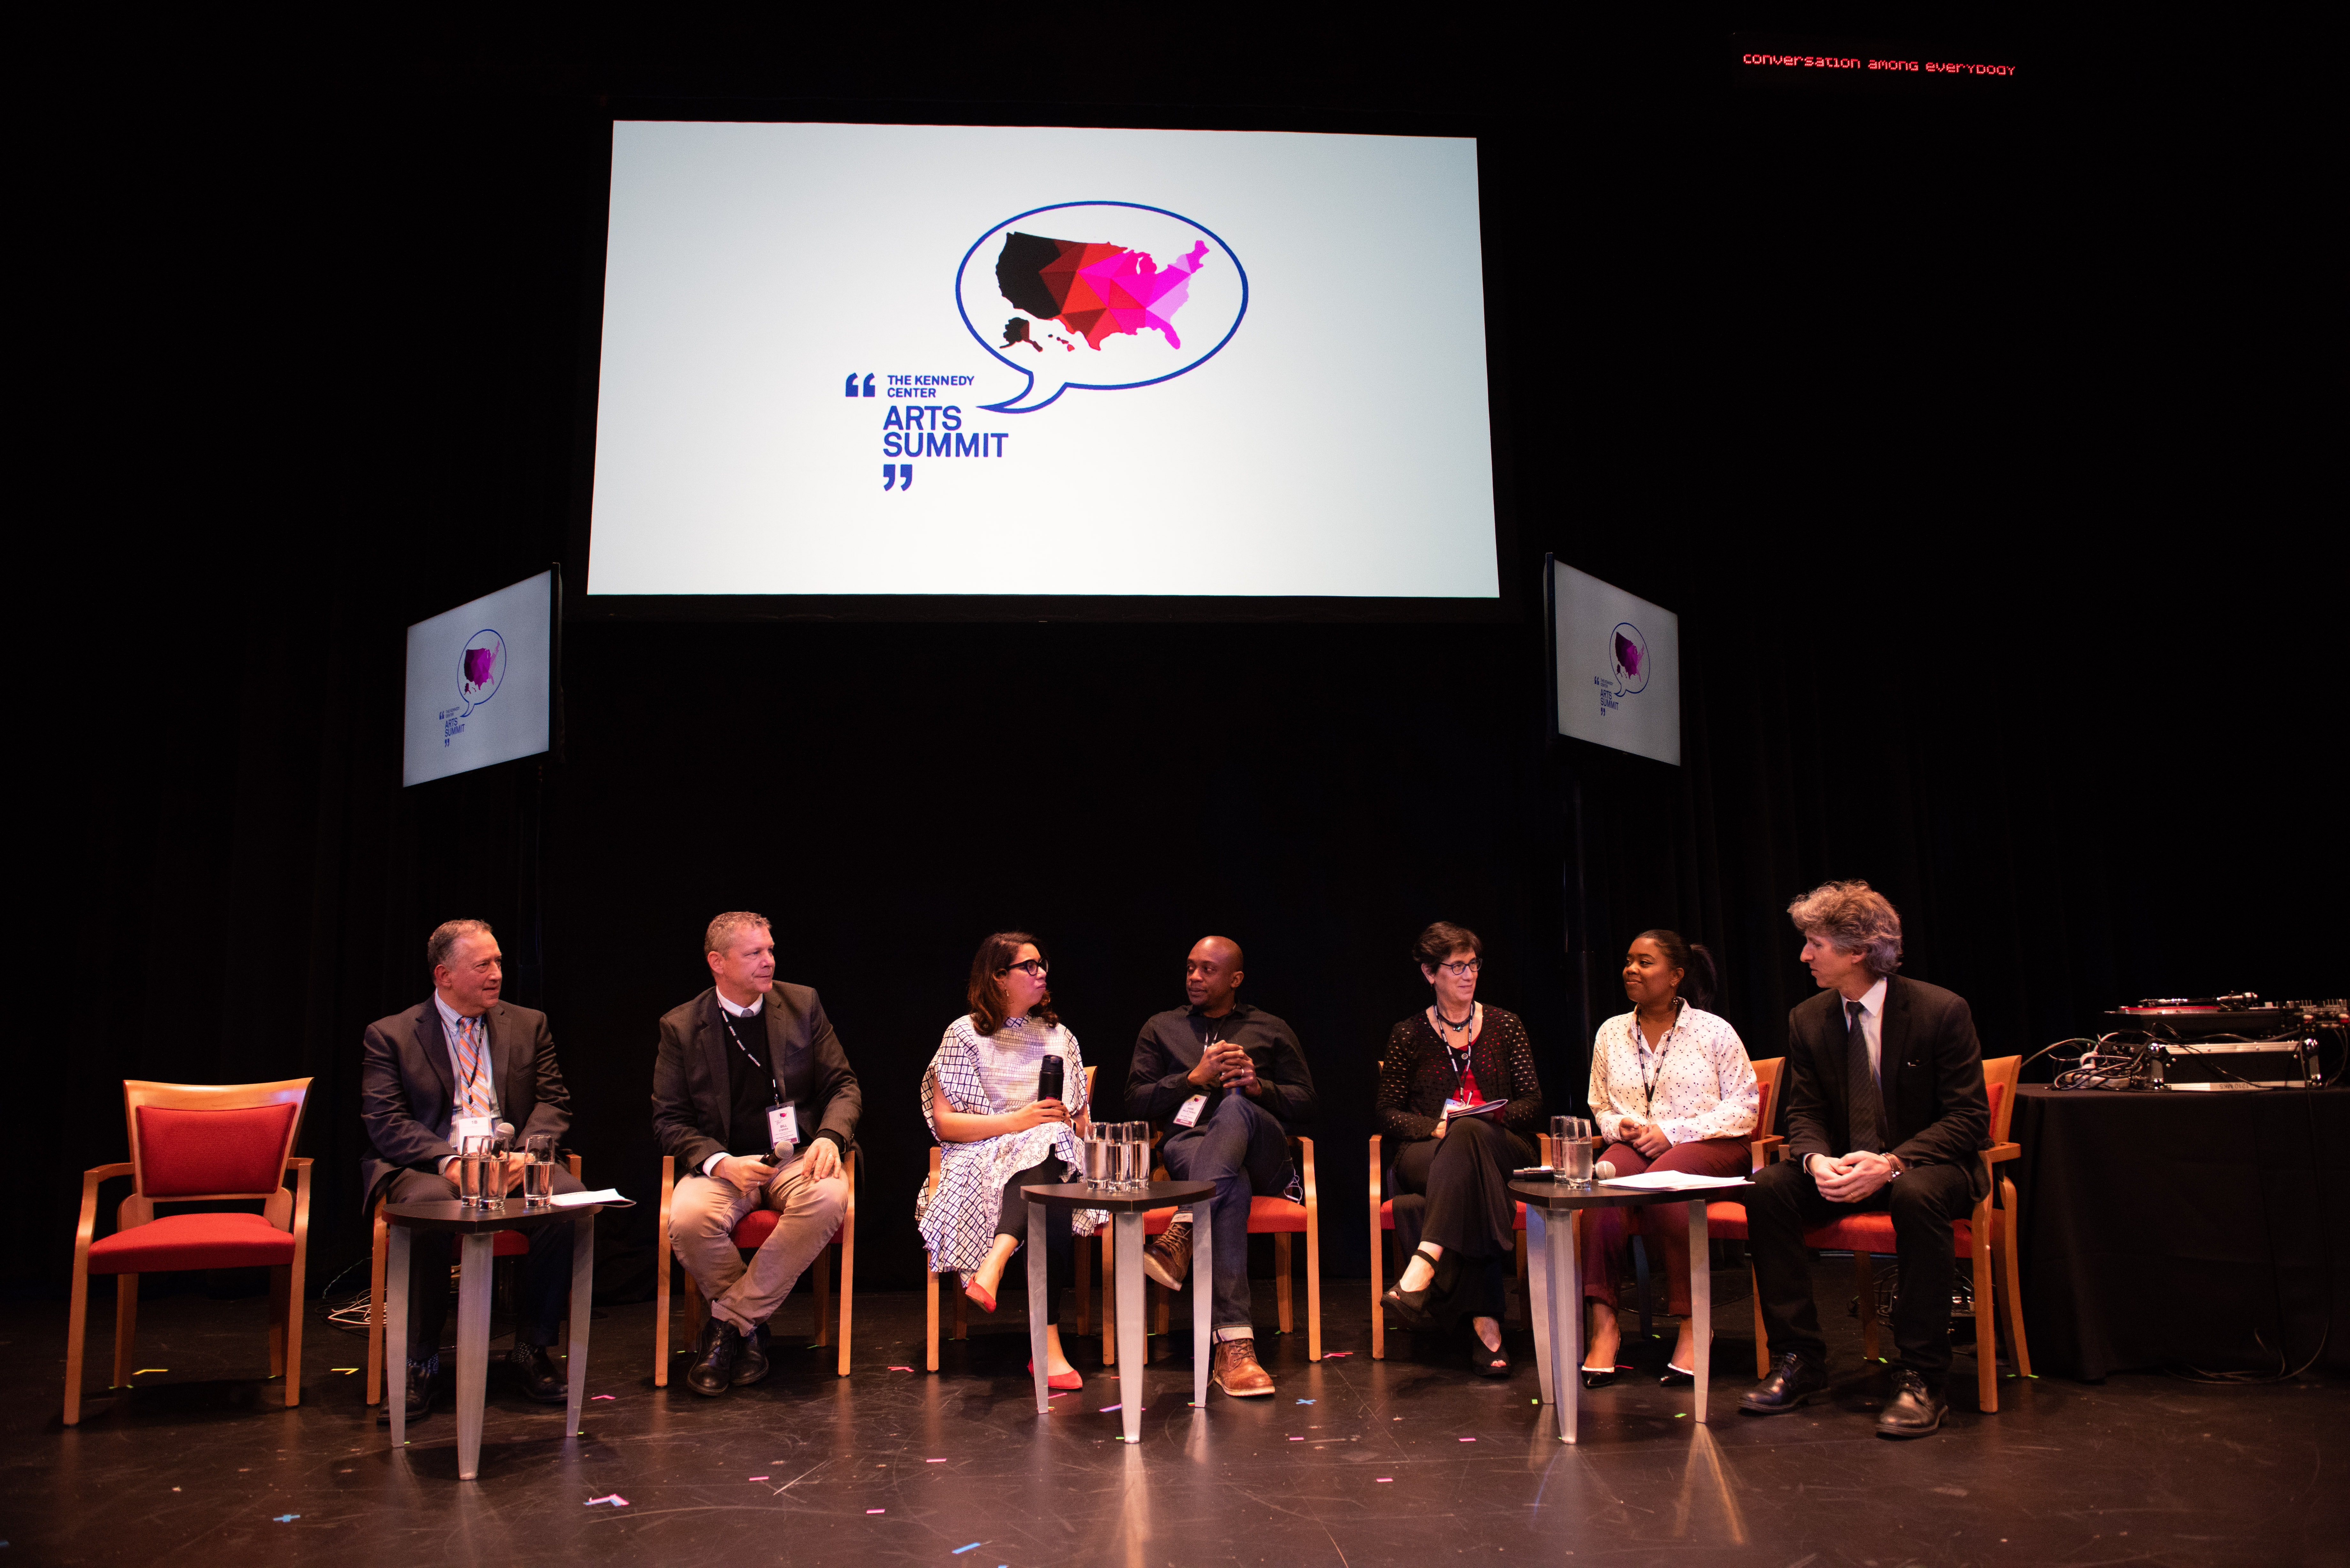 (L to R) – Jeremy Nobel, Bill O'Brien, Angelique Power, Hank Willis Thomas, Linda Nathan, Jasmine Babers, and Damian Woetzel at the 2018 Kennedy Center Arts Summit. Photo by Michael Butcher.